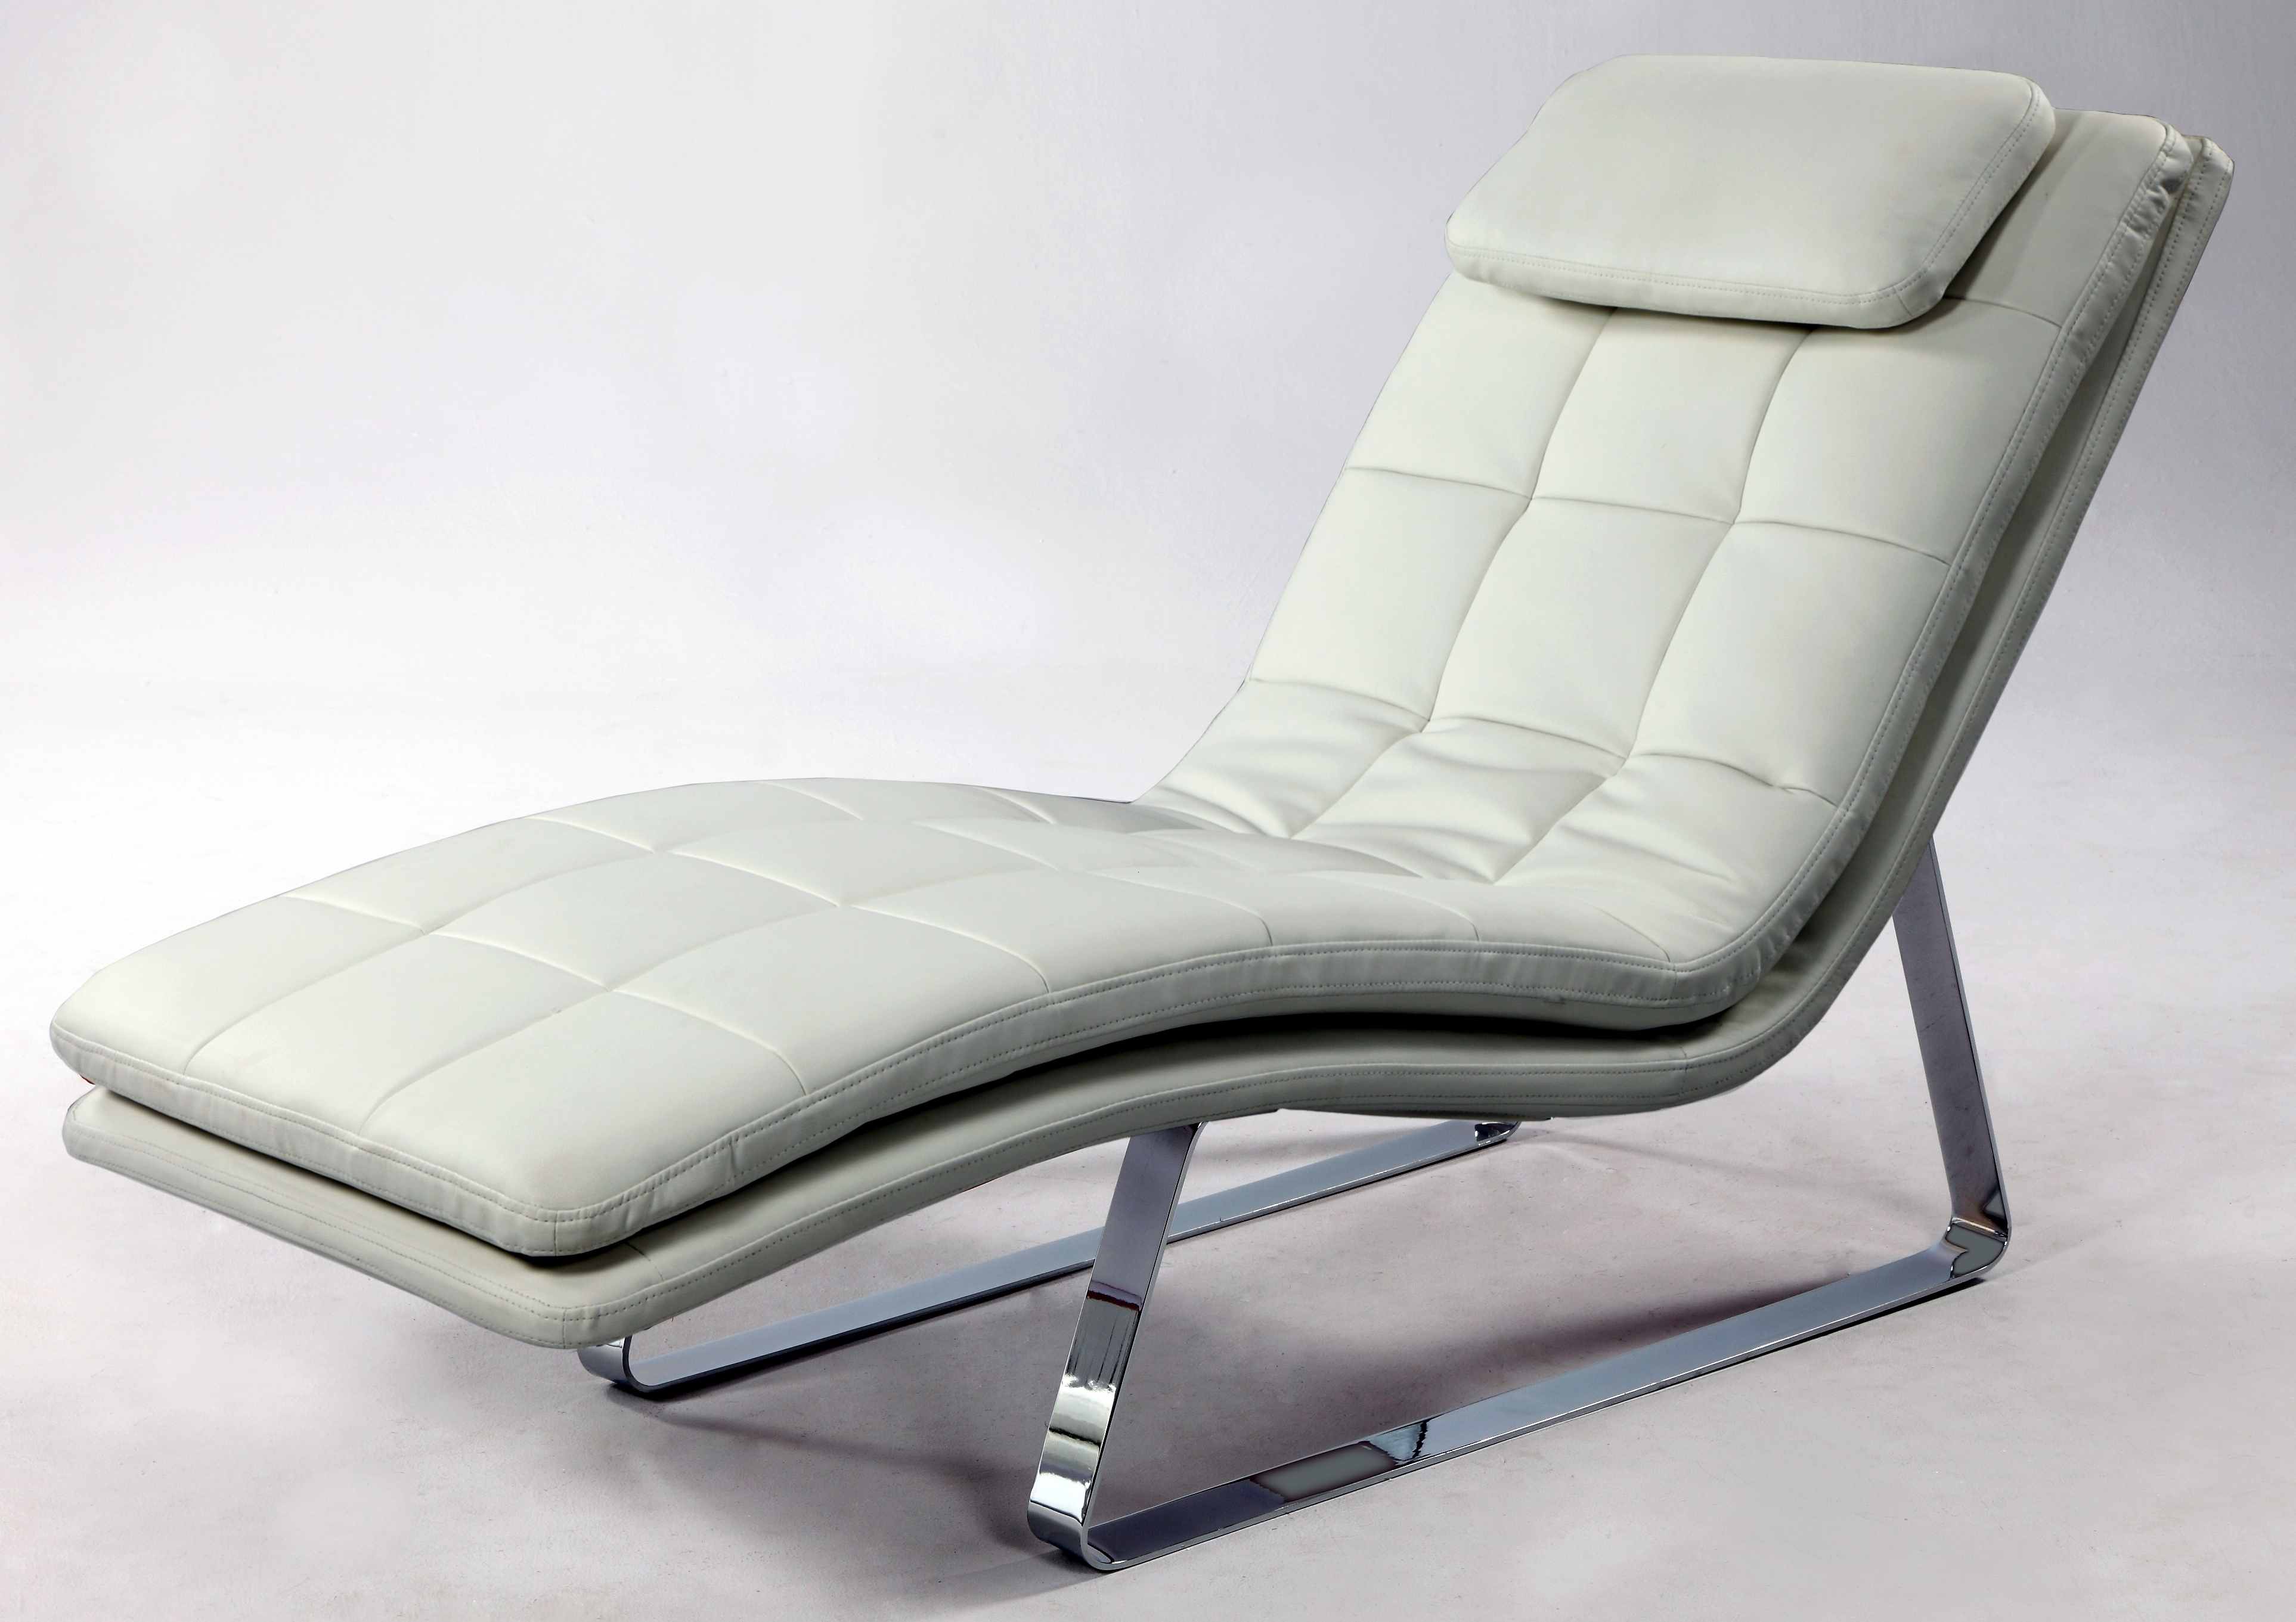 Favorite Contemporary Chaise Lounges In Full Bonded Leather Tufted Chaise Lounge With Chrome Legs New York (View 9 of 15)